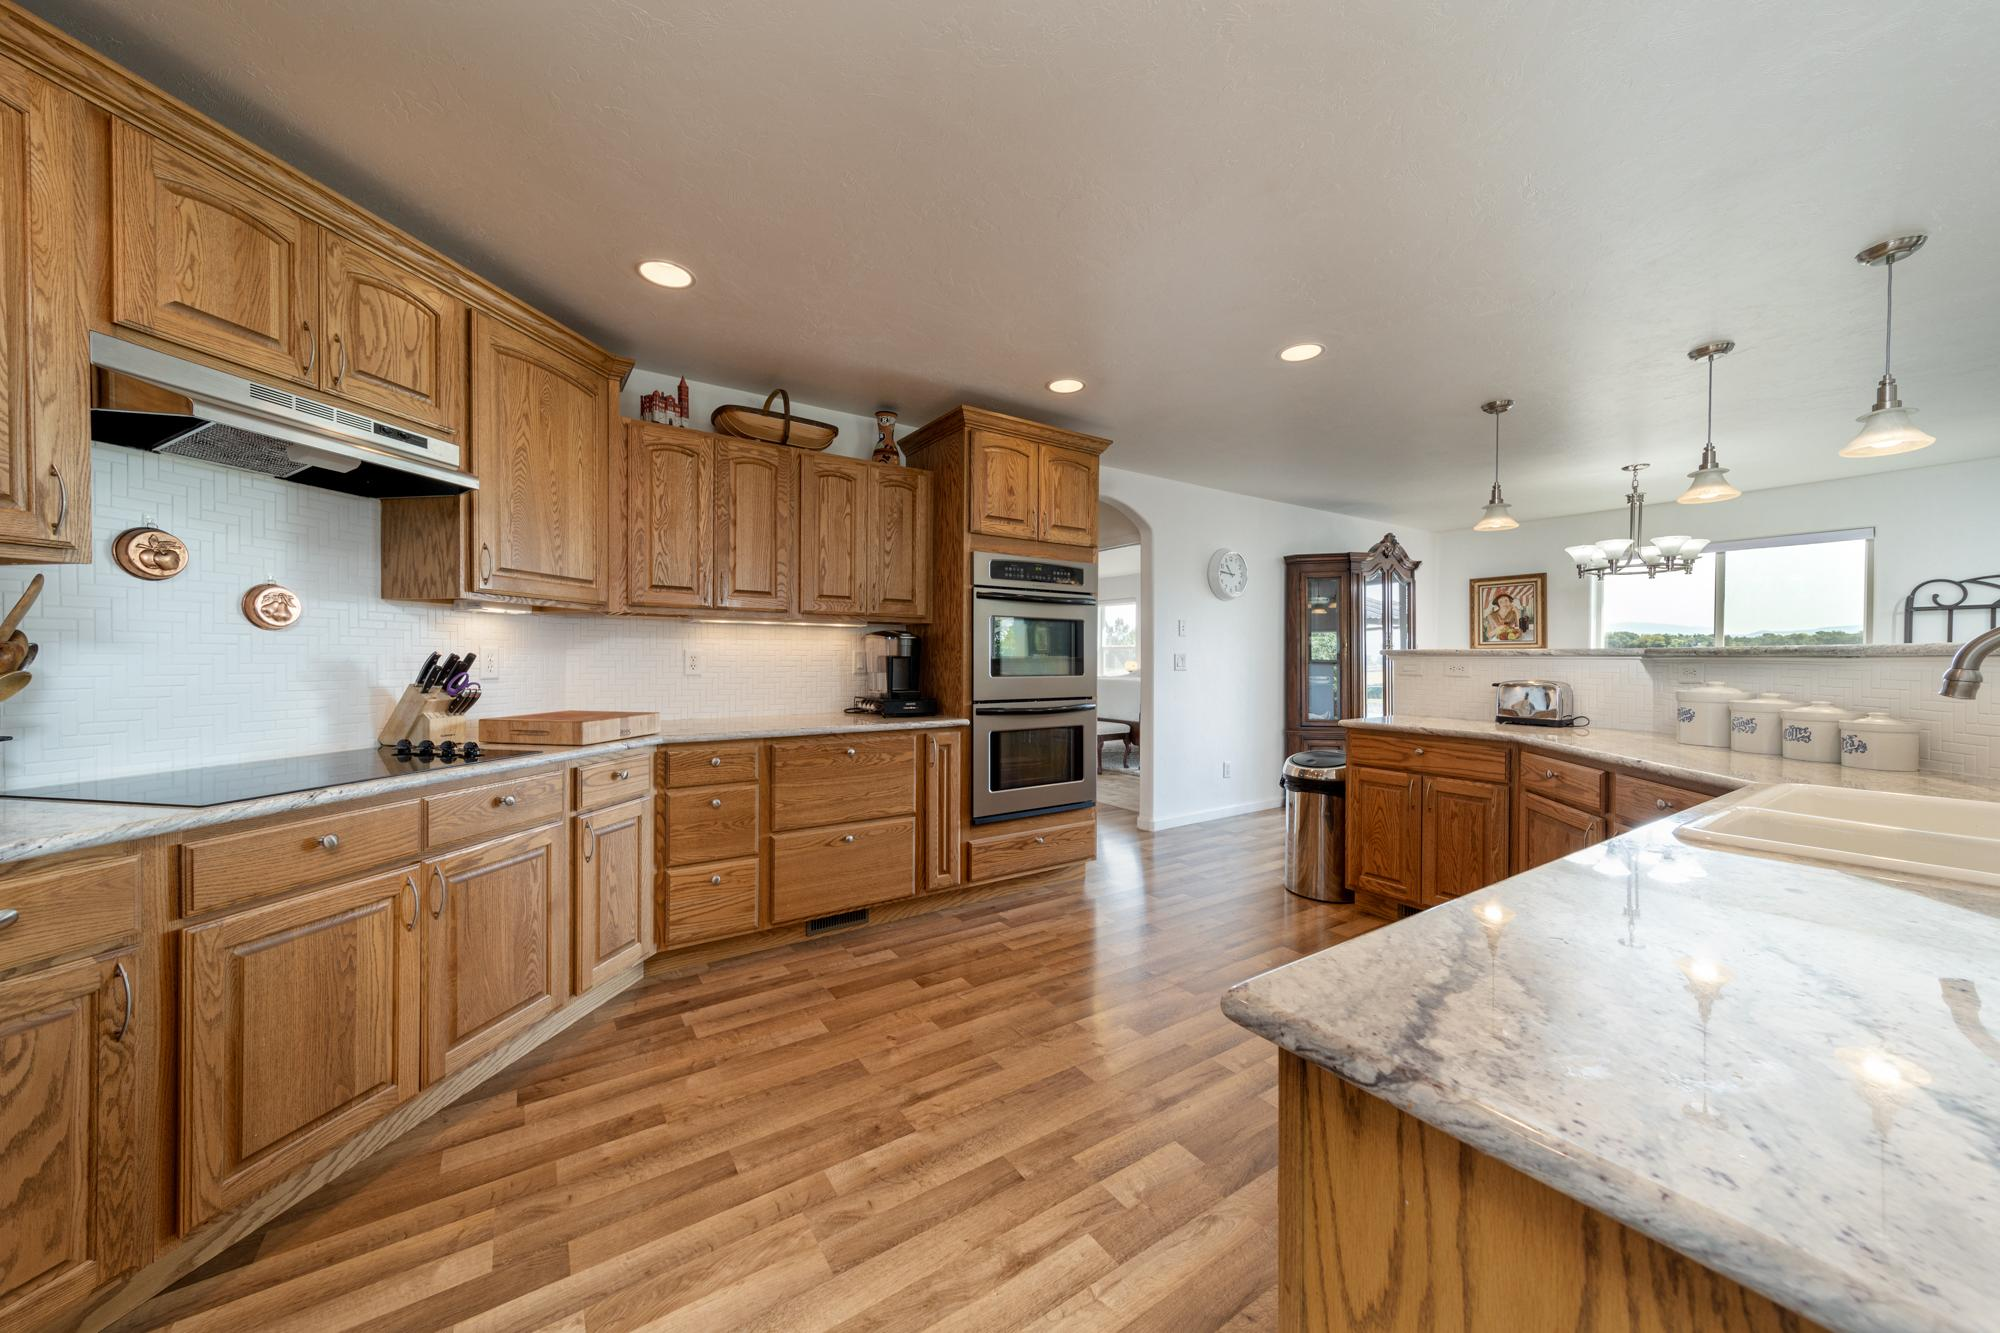 Kitchen with Granite Counters - 15552 6120 Rd Montrose, CO 81403 - Atha Team Country Real Estate